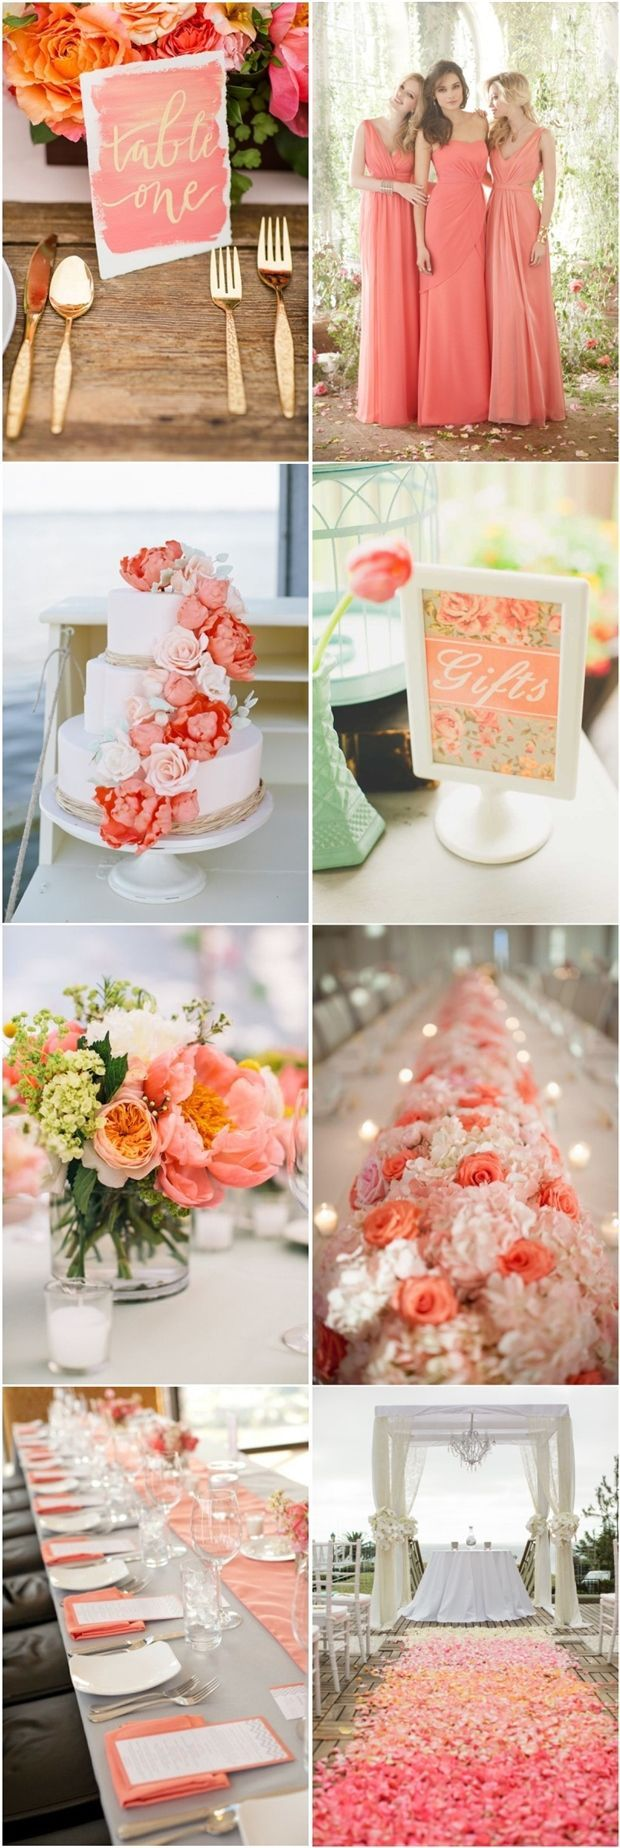 45 Coral Wedding Color Ideas You Dont Want To Overlook